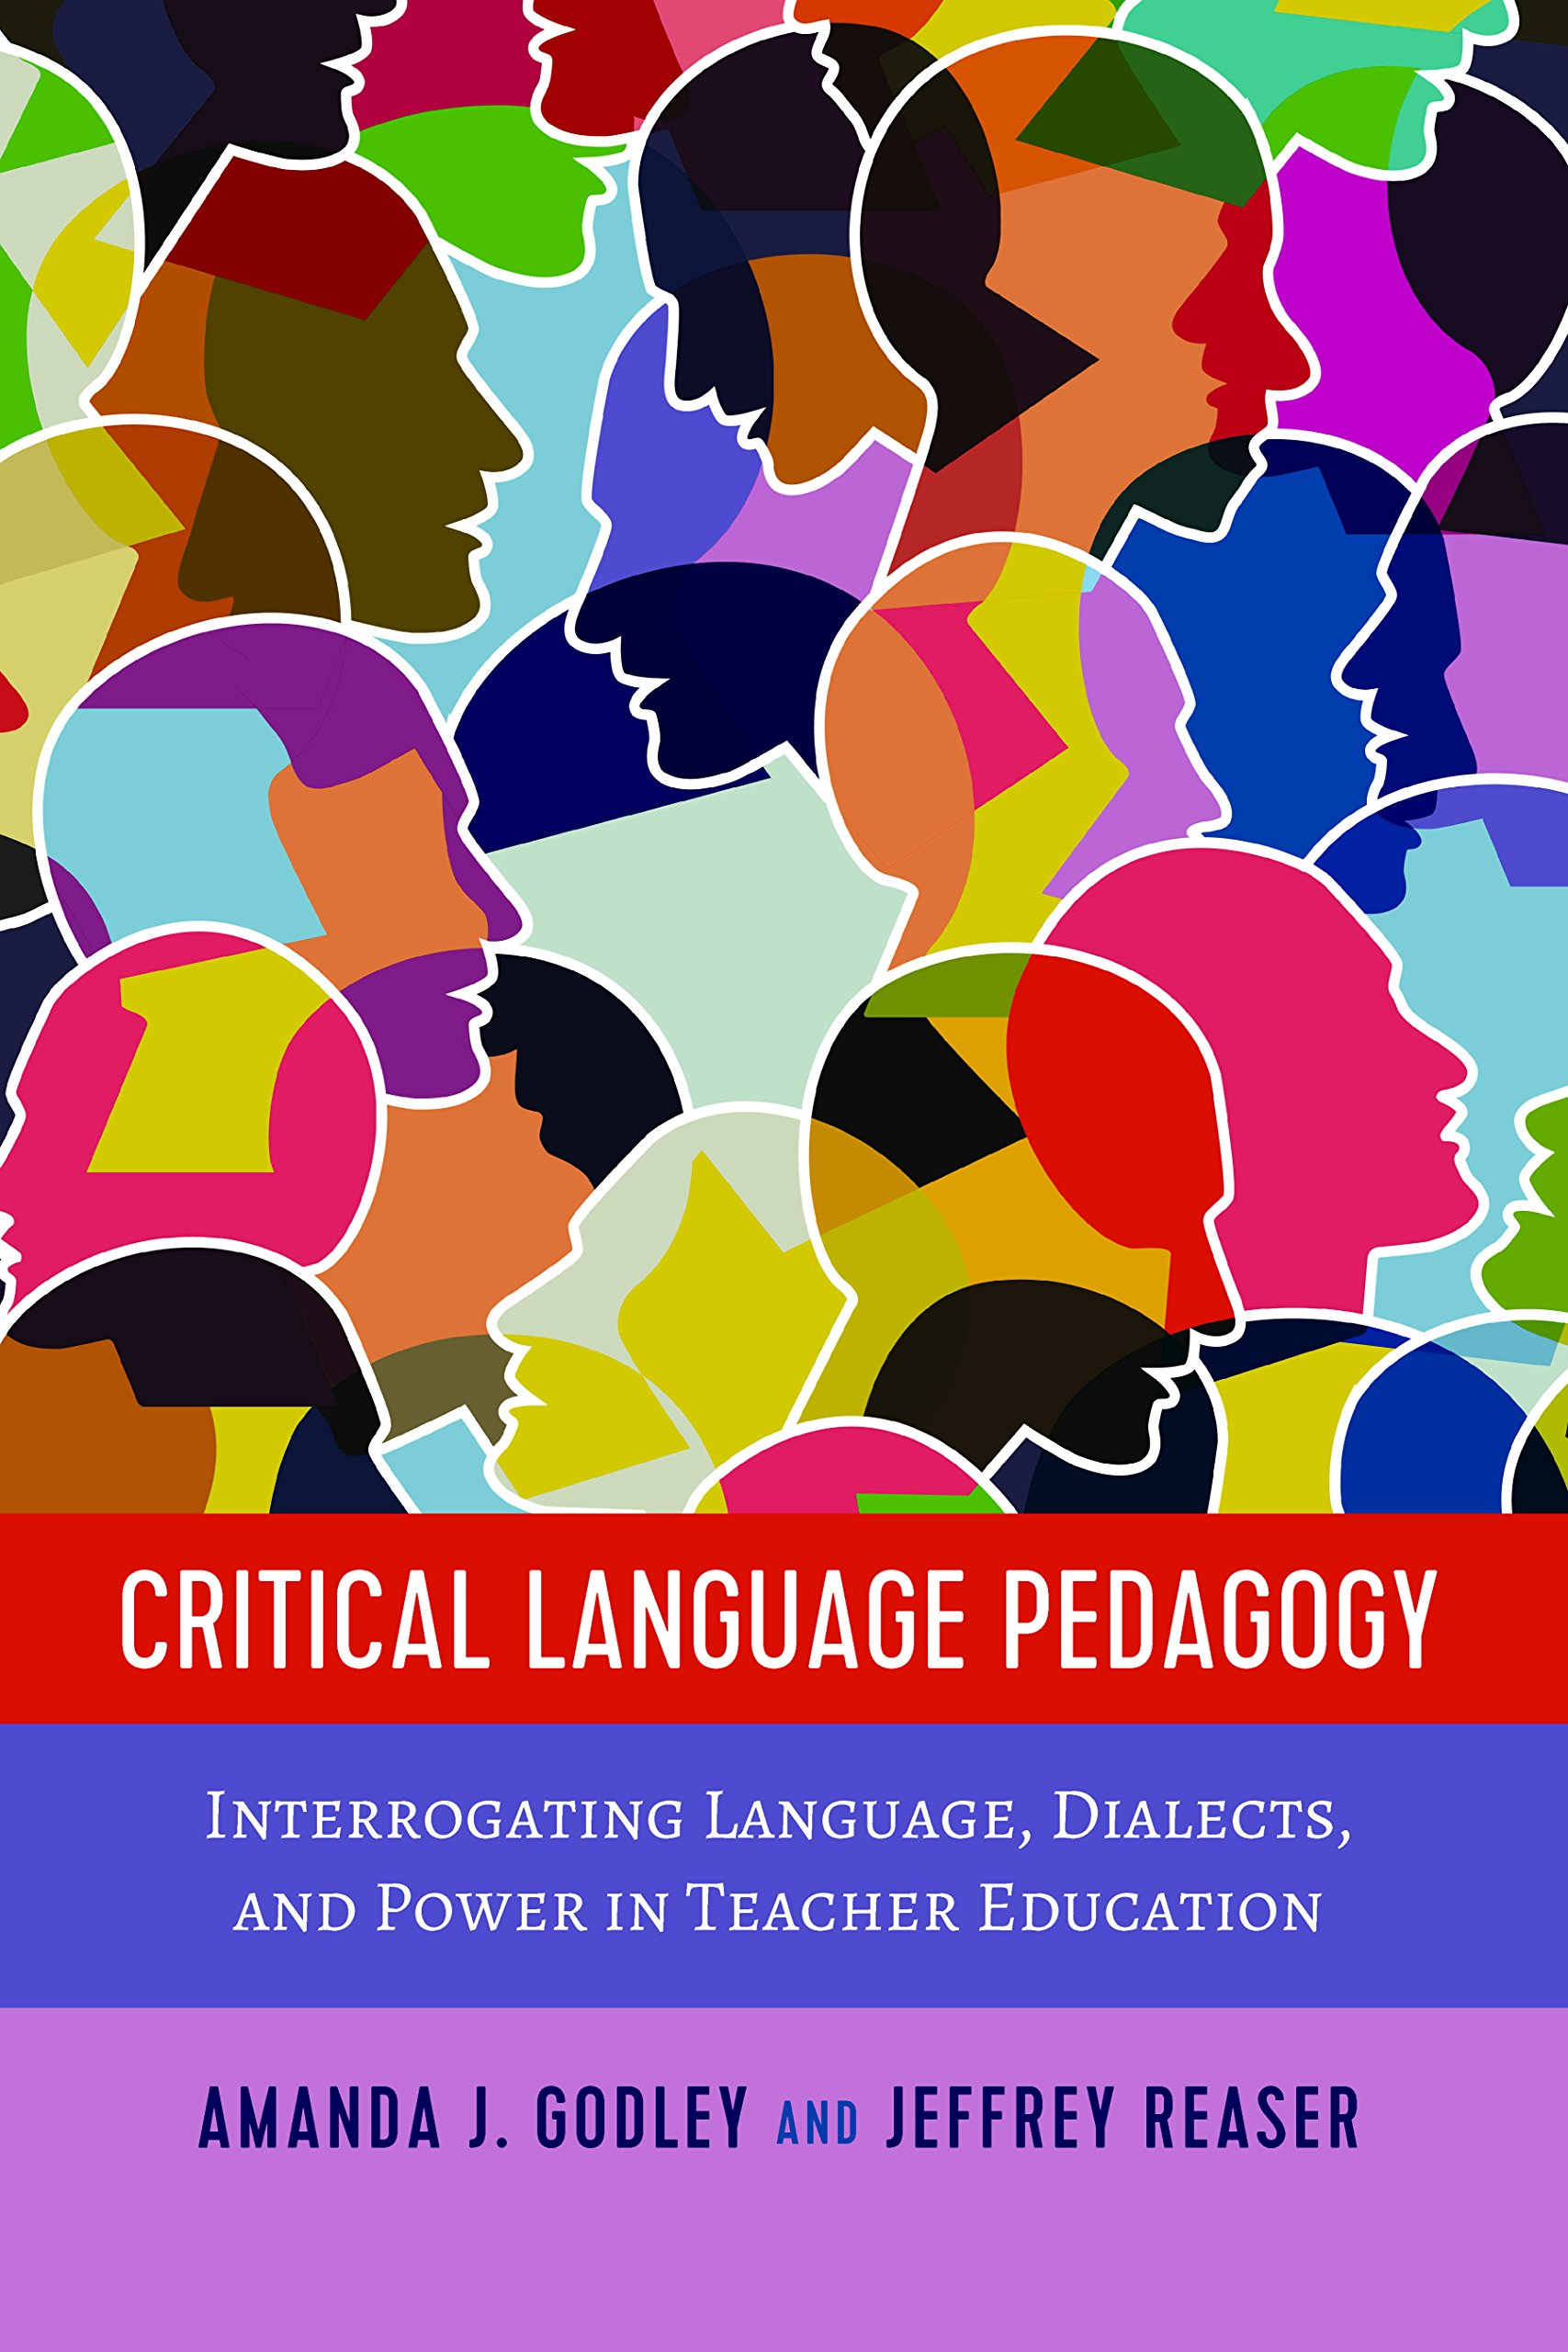 language pedagogy pdf